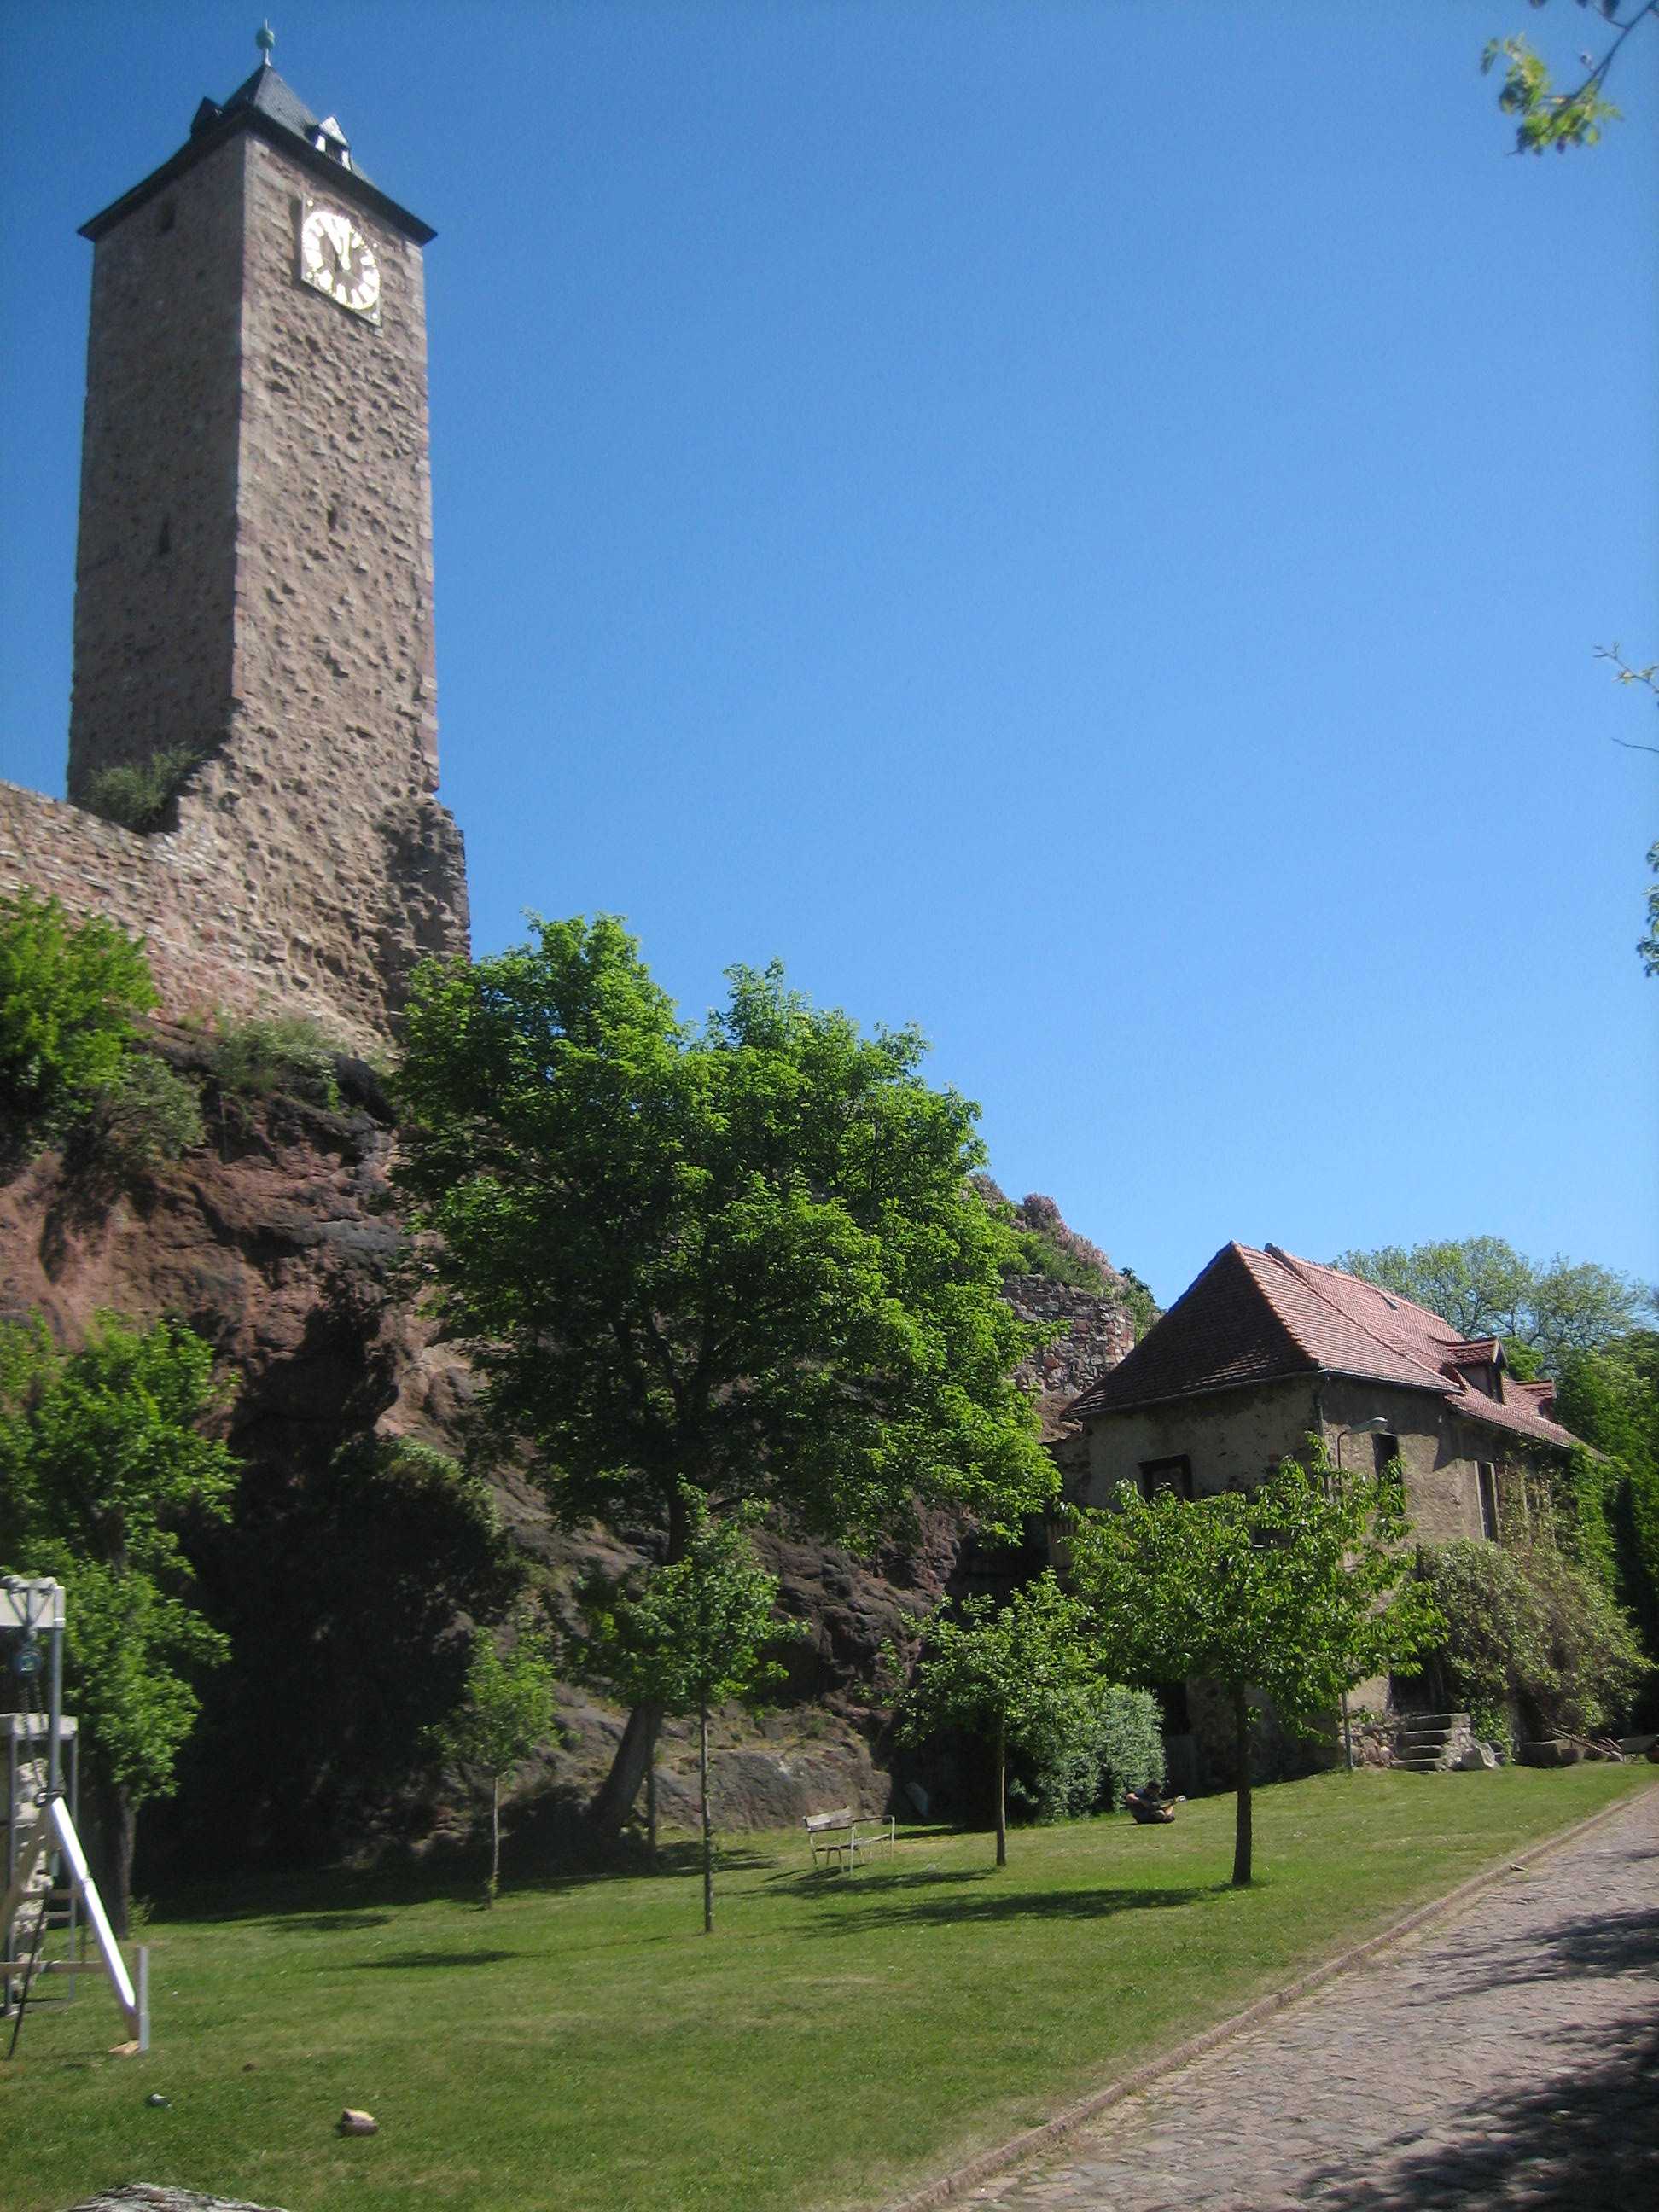 Burg Giebichenstein, mei 2018. Foto Esther Doornbusch, CC BY 4.0